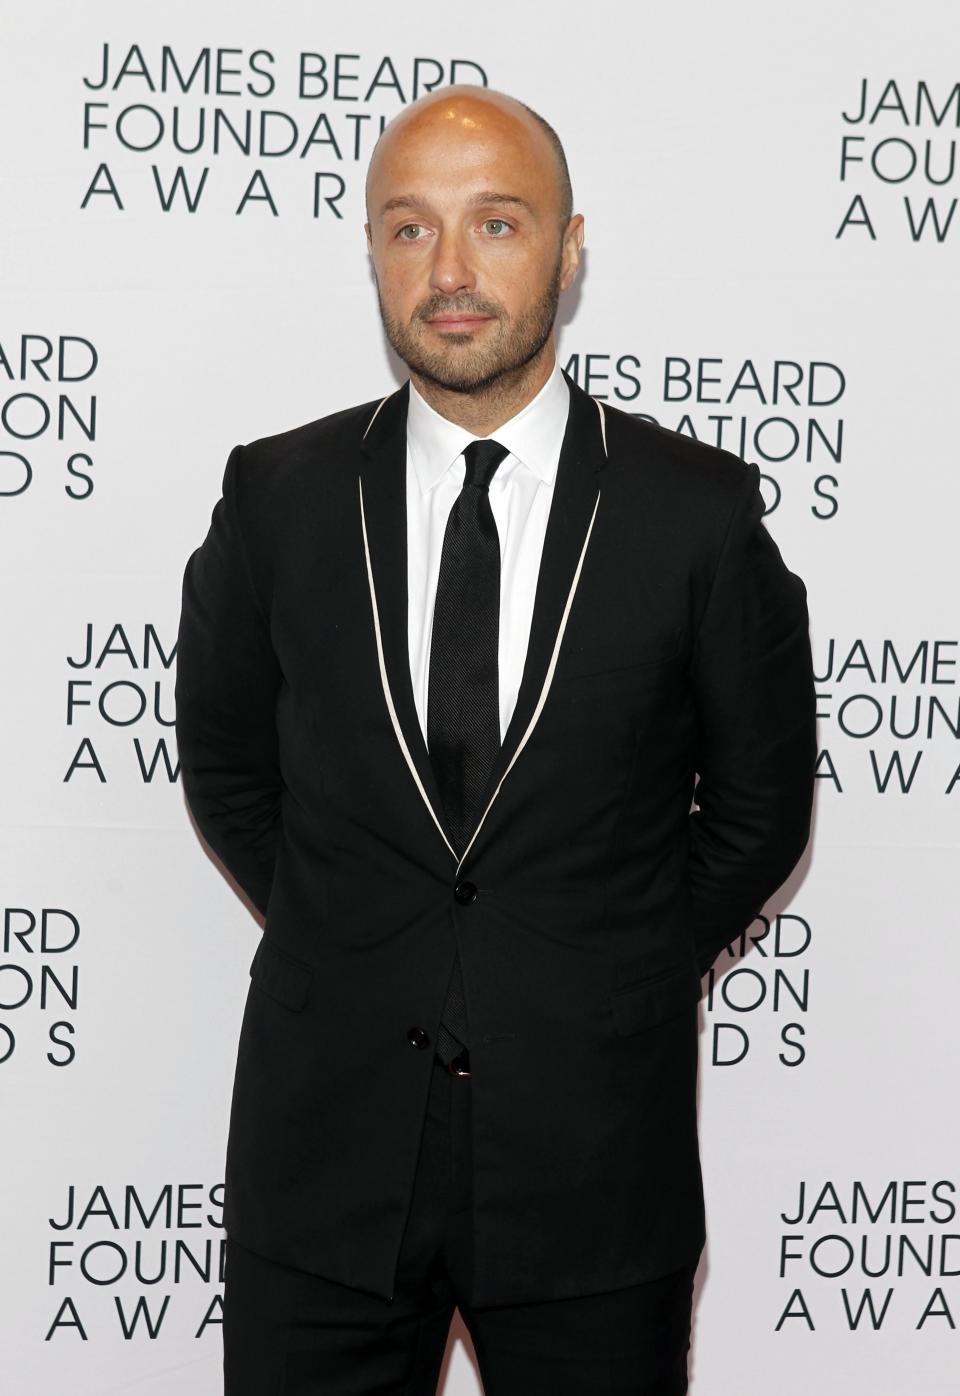 Chef Joe Bastianich arrives for the James Beard Foundation Awards, Monday, May 7, 2012, in New York. (AP Photo/Jason DeCrow)